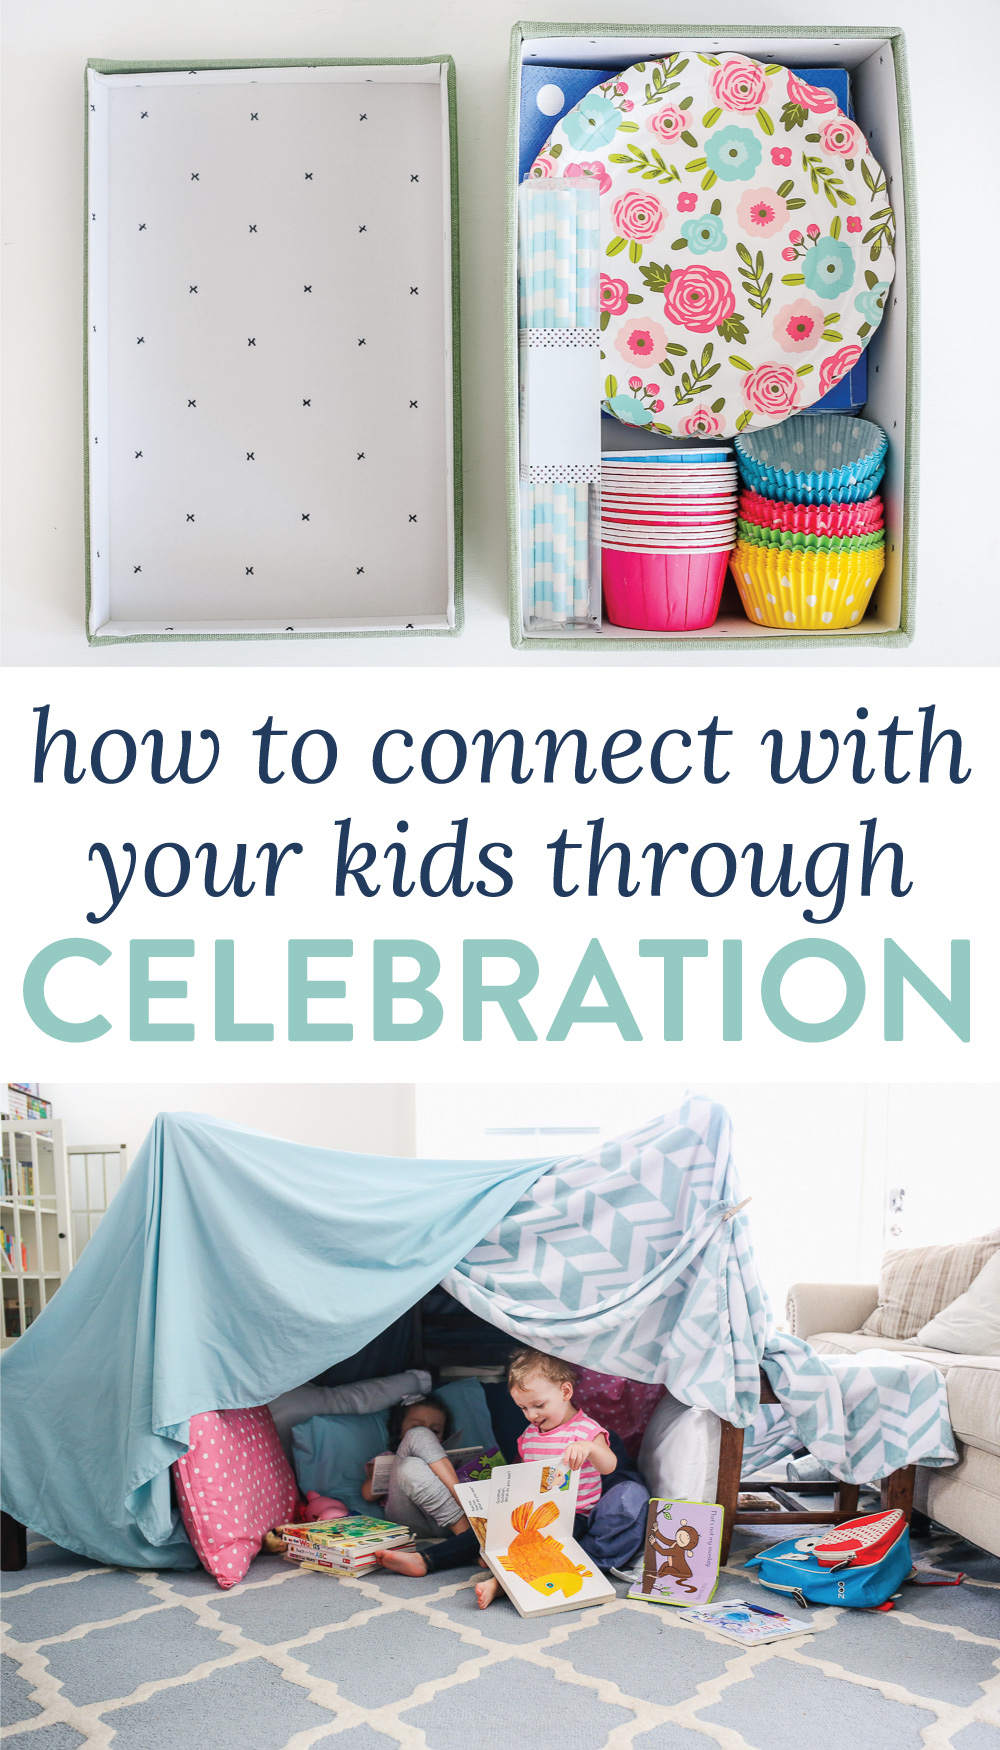 5 Tips To Use Seasonal Celebrations to Love on Your Kids | Kids Activities | Celebrating Kids | Seasonal Celebrations